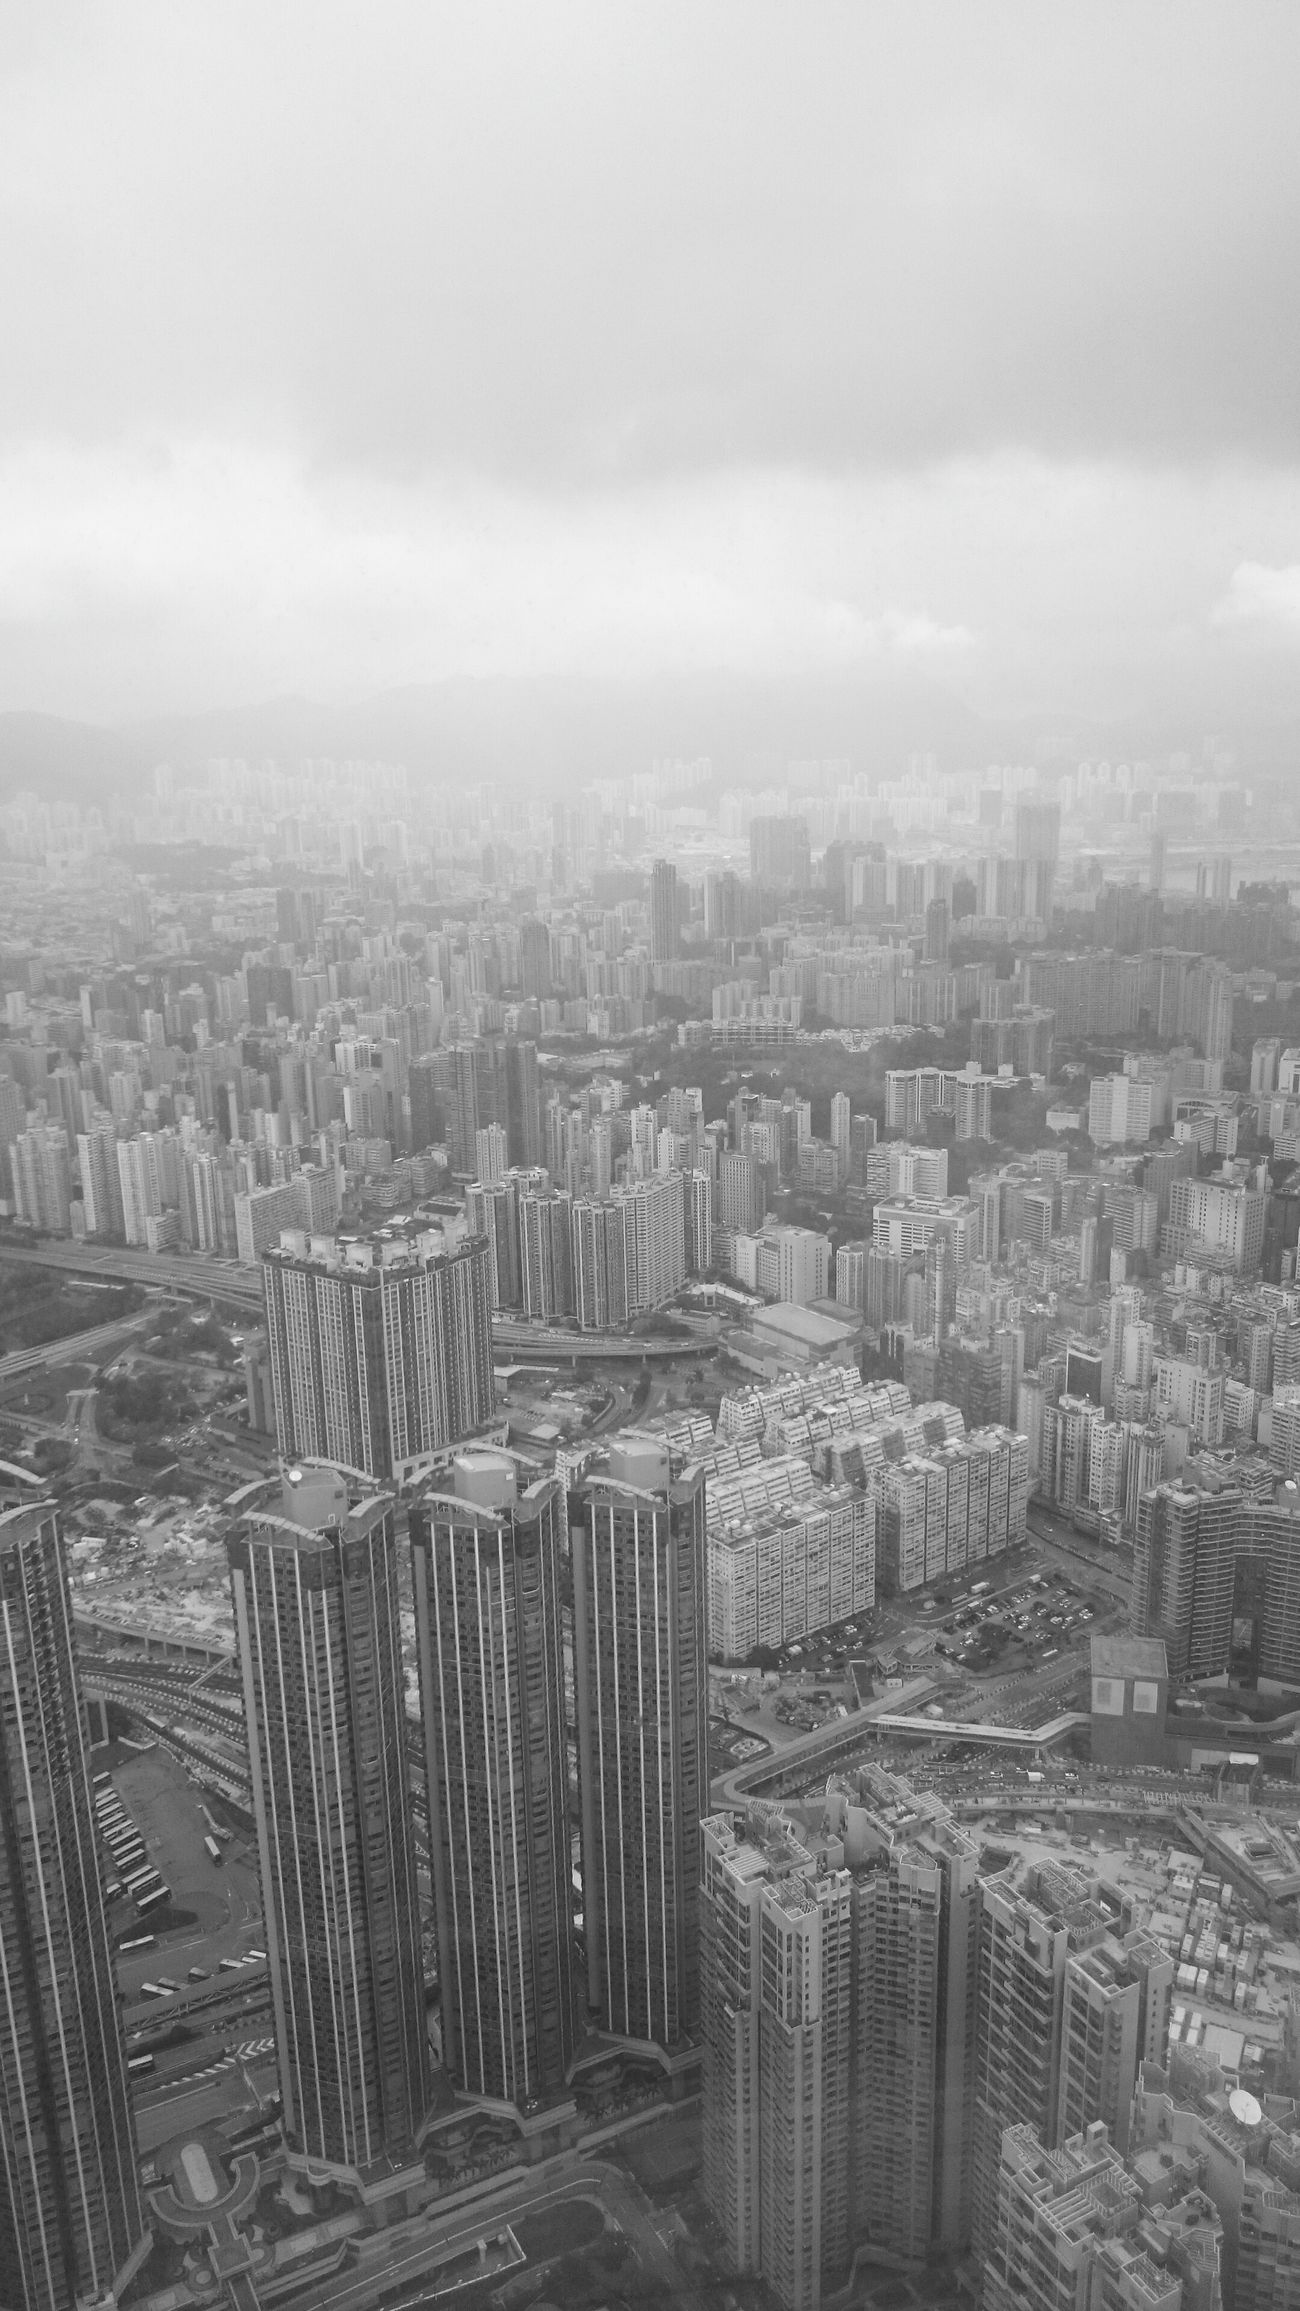 Architecture No People Sky100hk Sky100 Hongkongstreet Hongkongcity Hong Kong City Hongkongcollection Hongkonglife Hongkongphotography HongKong High Angle View Urban Skyline Cityscape Skyscraper B&w Street Photography Black And White Hongkong Black&white Fortheloveofblackandwhite Blackandwhite Blackandwhite Photography